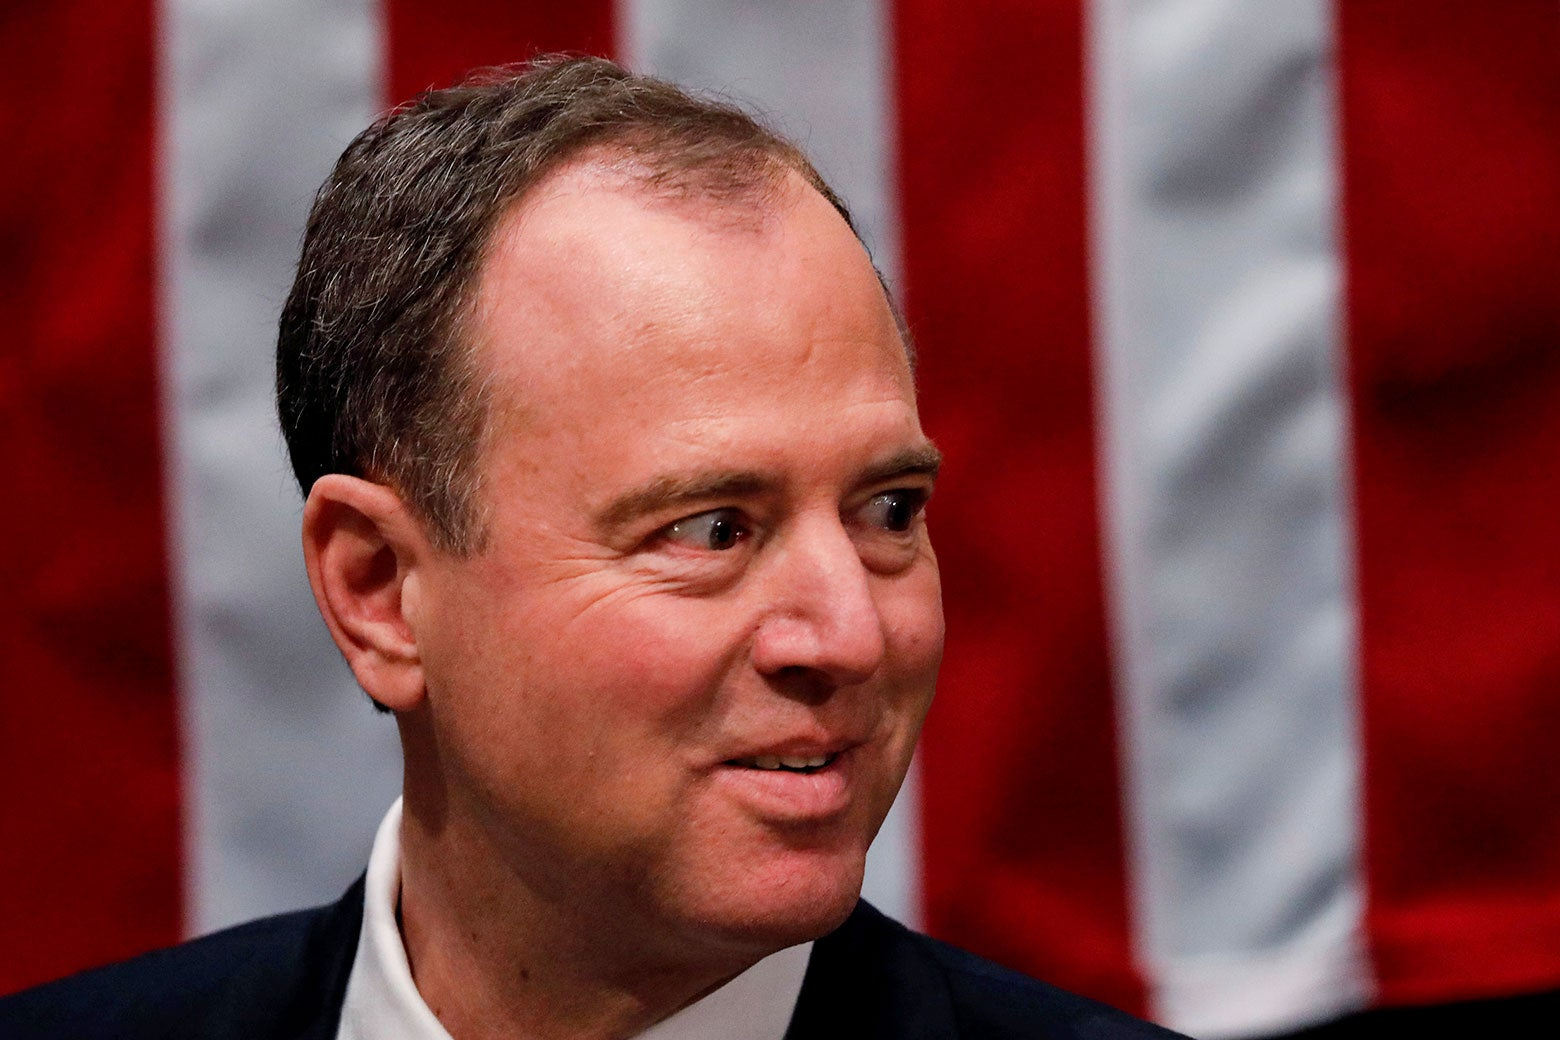 Adam Schiff in front of an American flag.